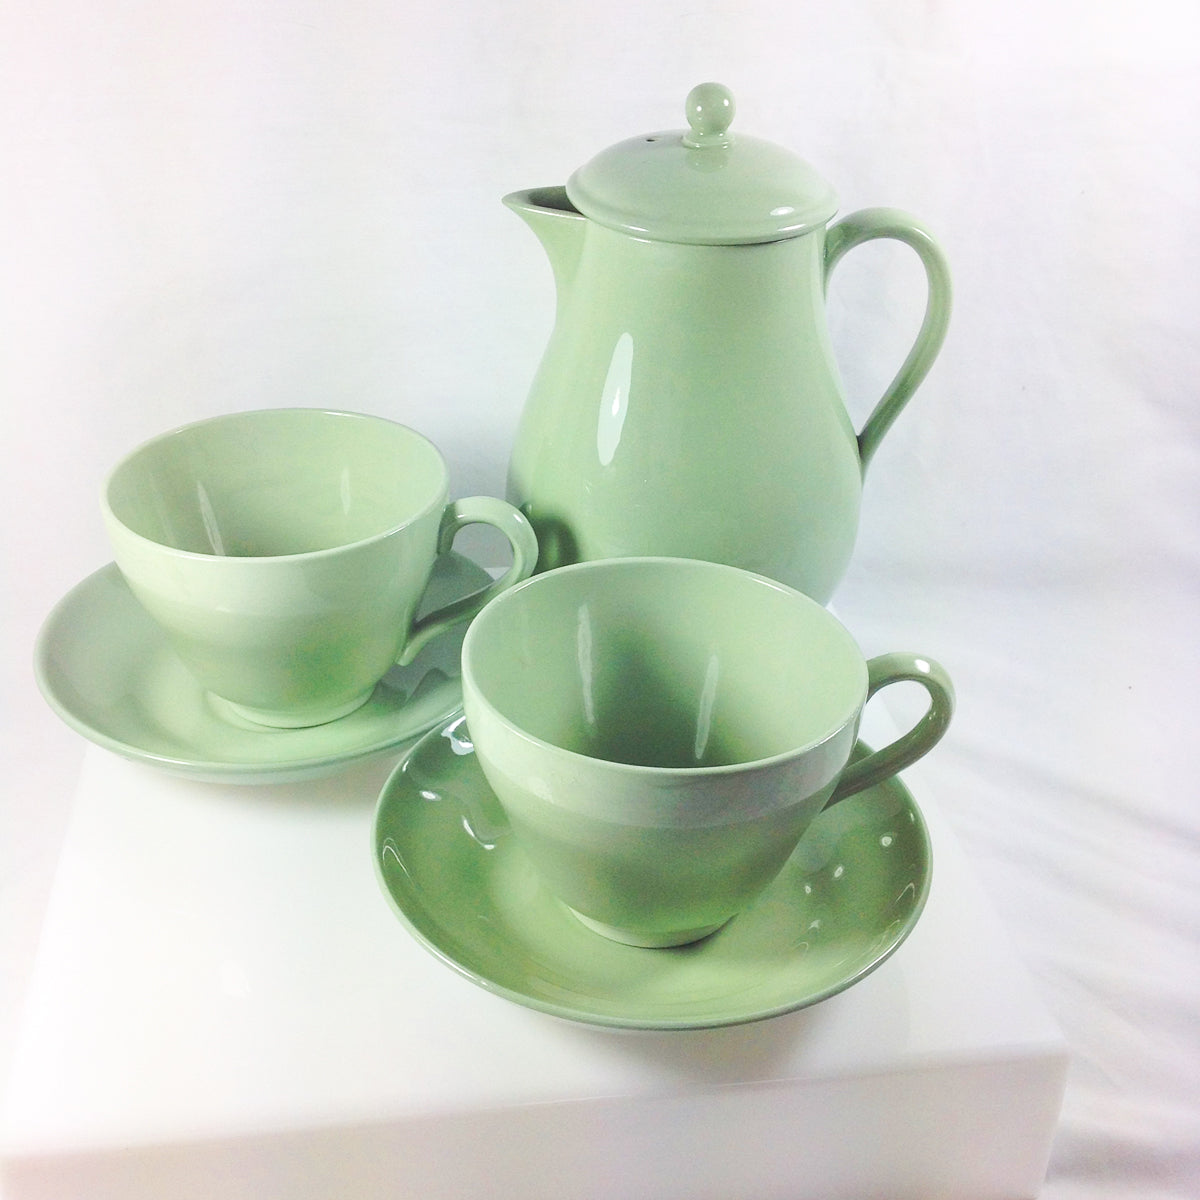 Wedgwood of Barlaston and Etruria Celadon Ceramics